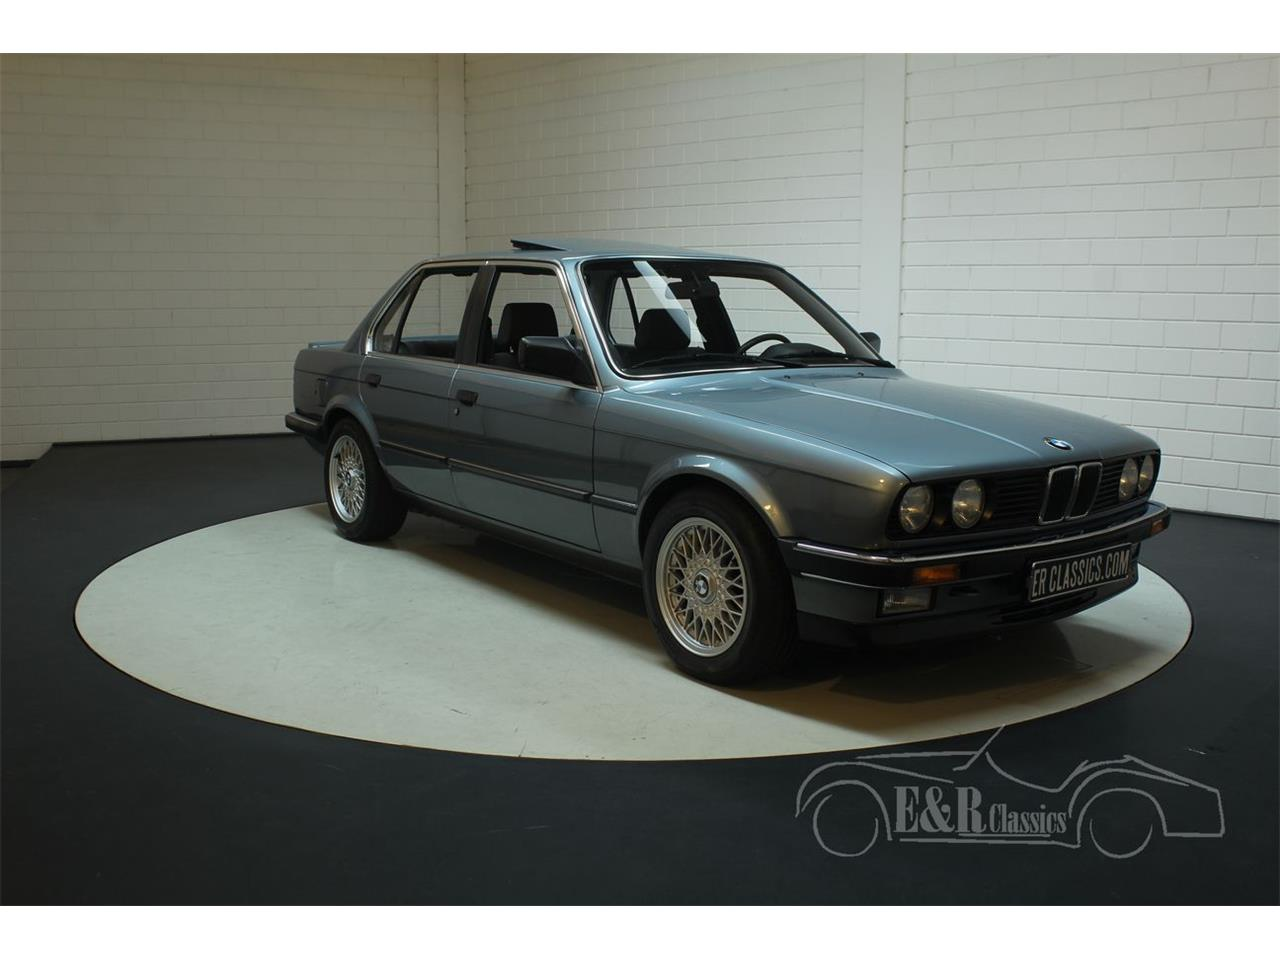 Large Picture of 1986 BMW 325i located in Waalwijk - Keine Angabe - - $33,850.00 Offered by E & R Classics - PGT1